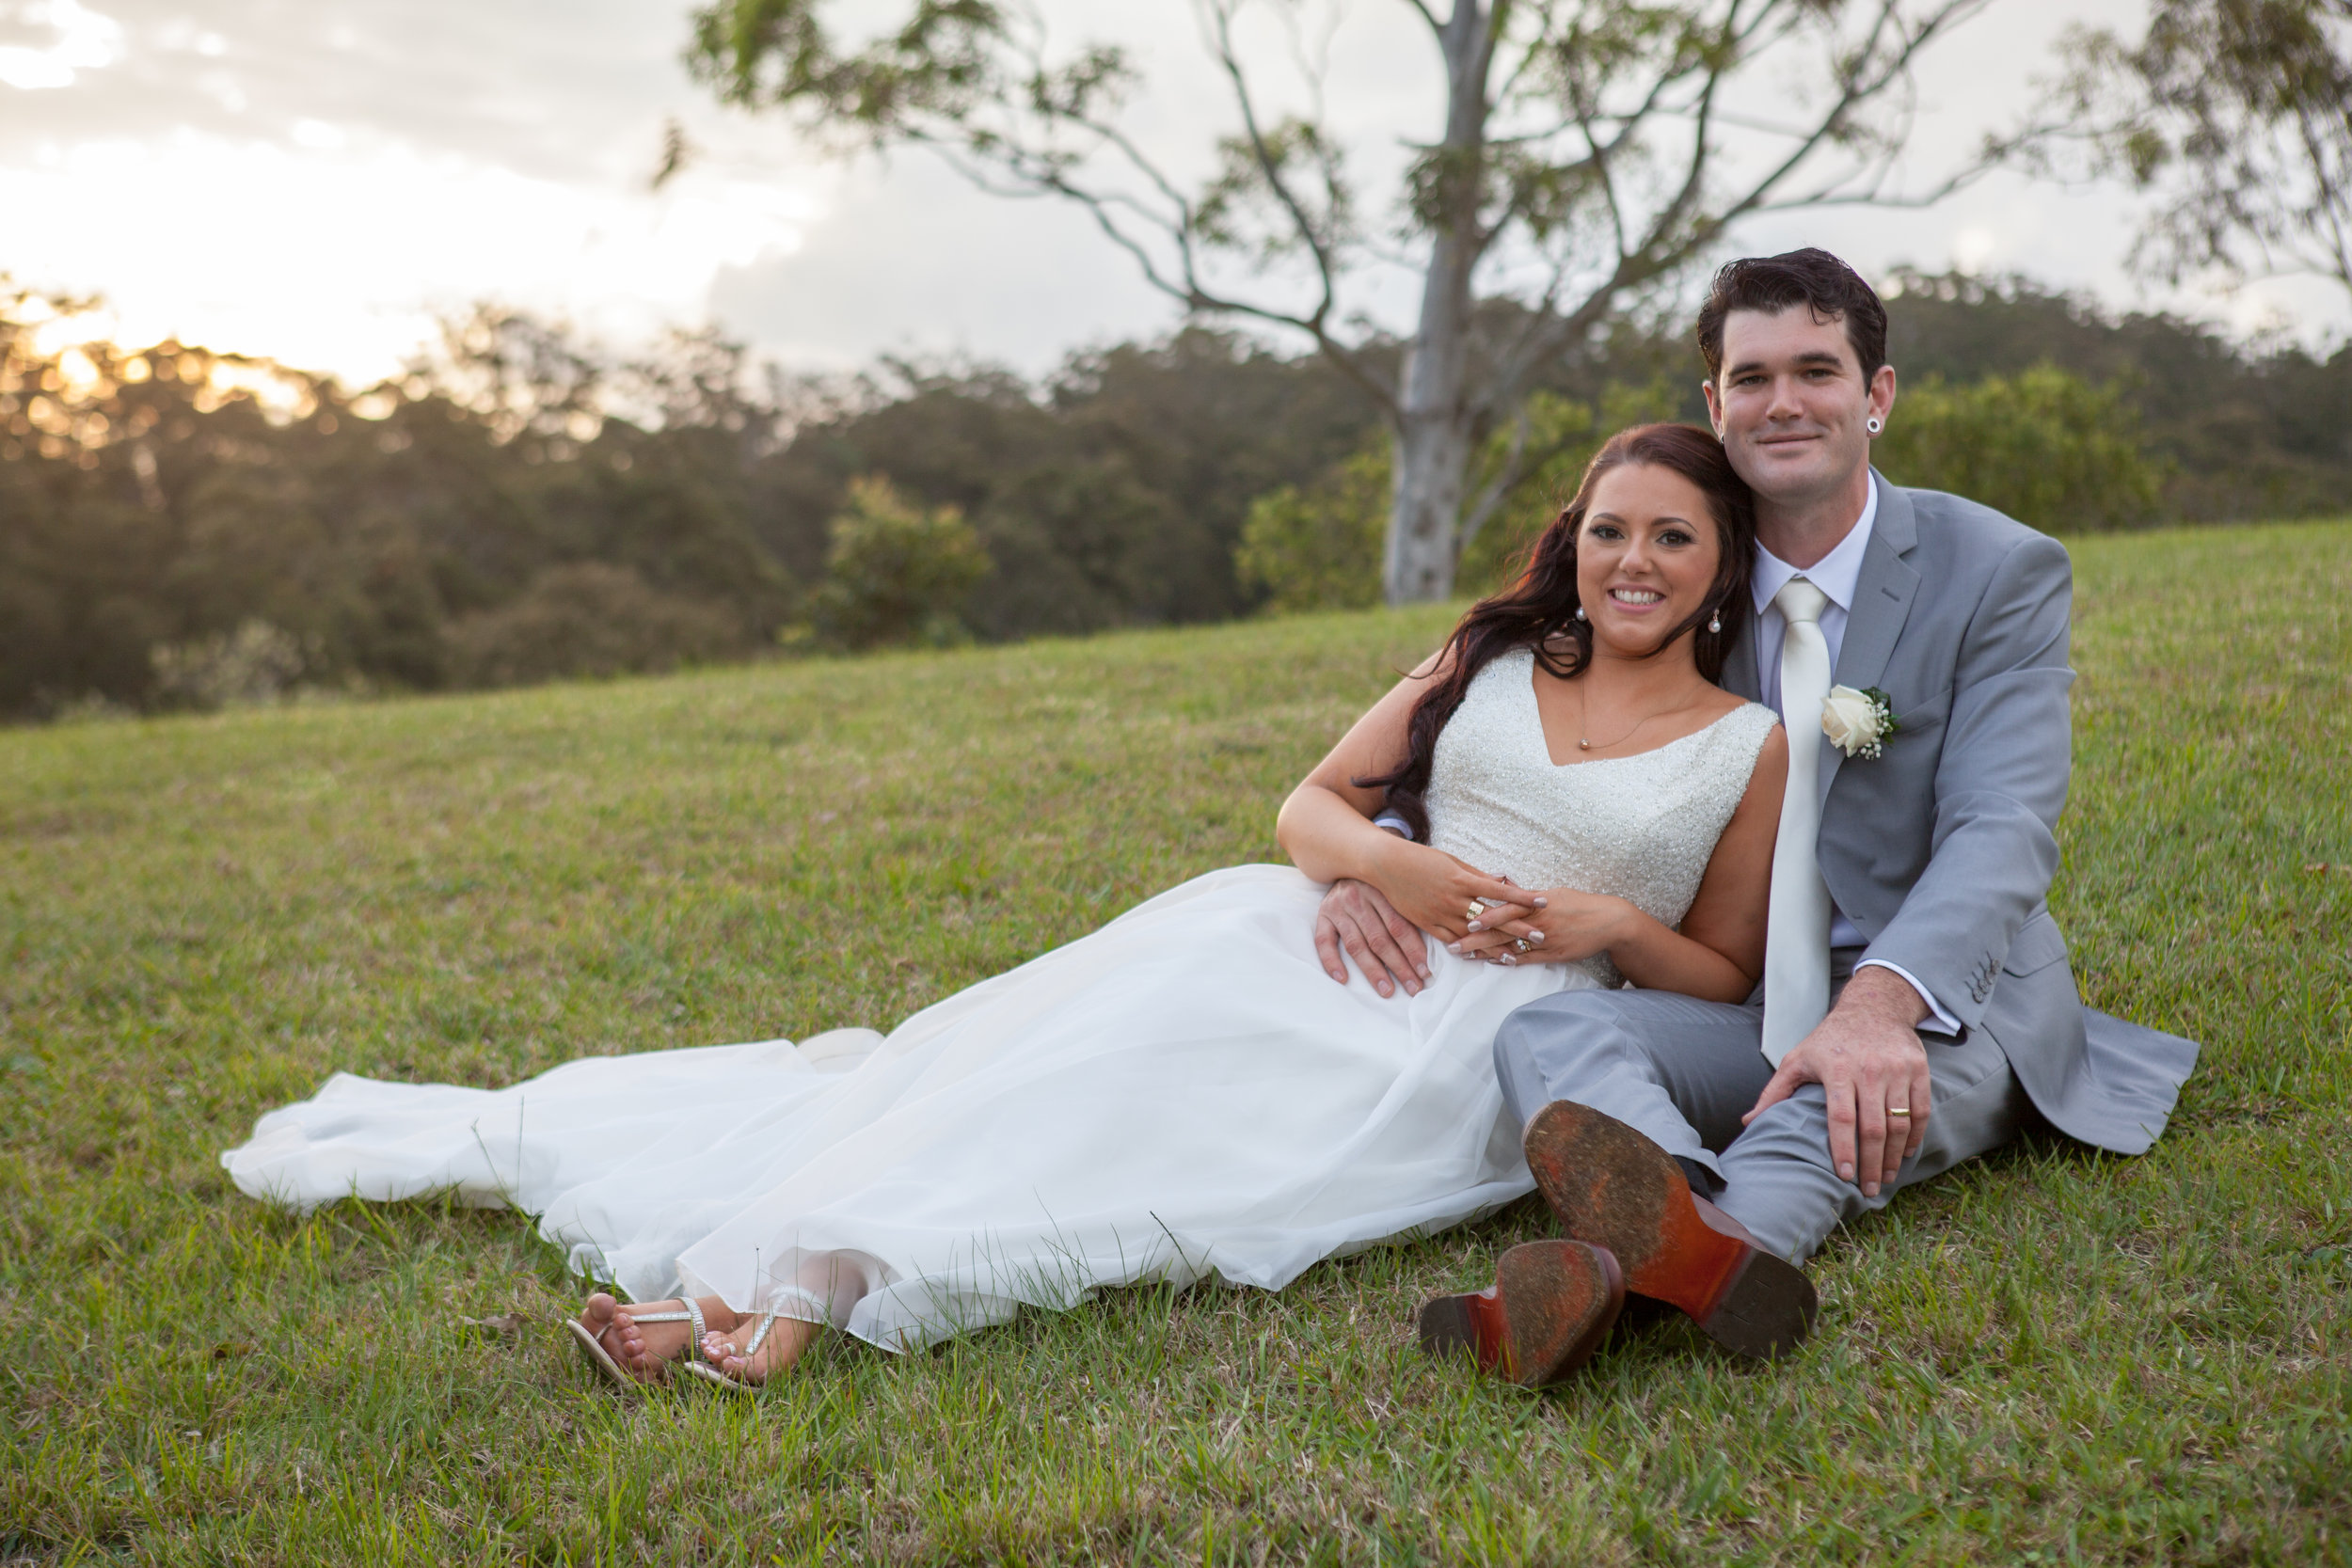 Matthew and Emma Lynch - We cannot speak highly enough of Marshall Rees. We used his photography service for our wedding and were so happy with the whole experience from end to end.Marshall listened to what was important to us and made the whole day flow so easily with an air of comfortability and professionalism. He went above and beyond and was so easy to deal with. We highly recommend him for any type of photography needed, he will not disappoint!